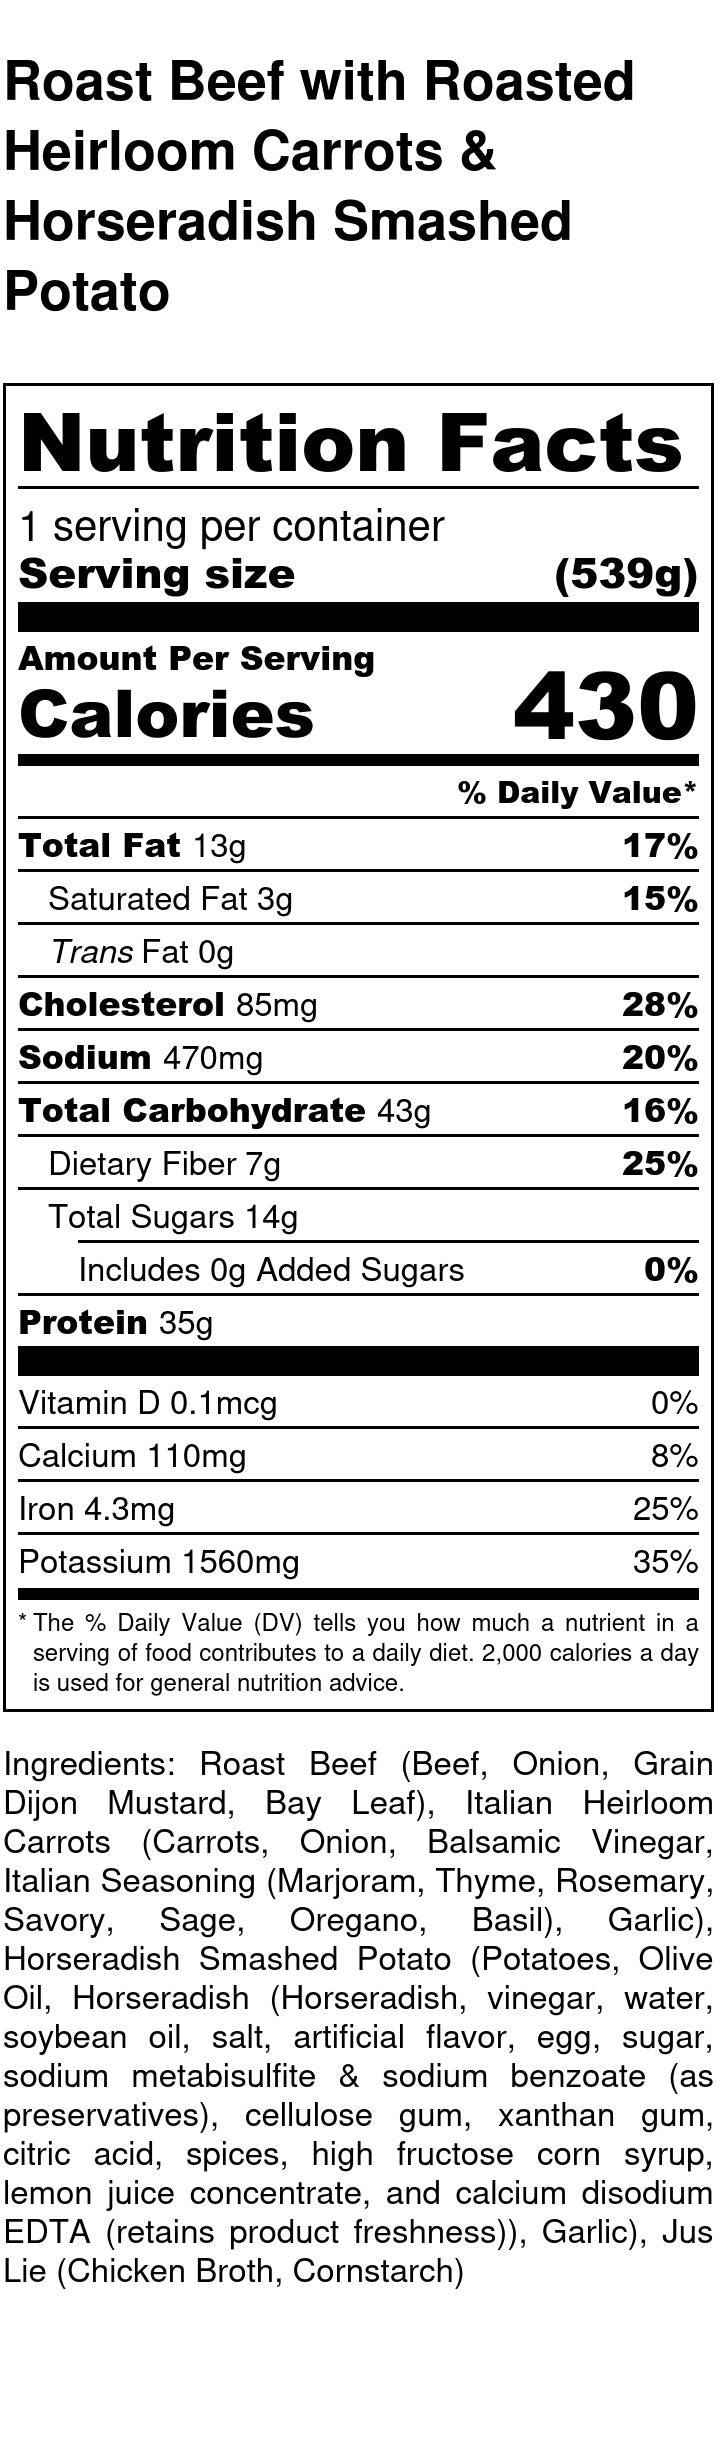 Roast Beef Nutrition Facts